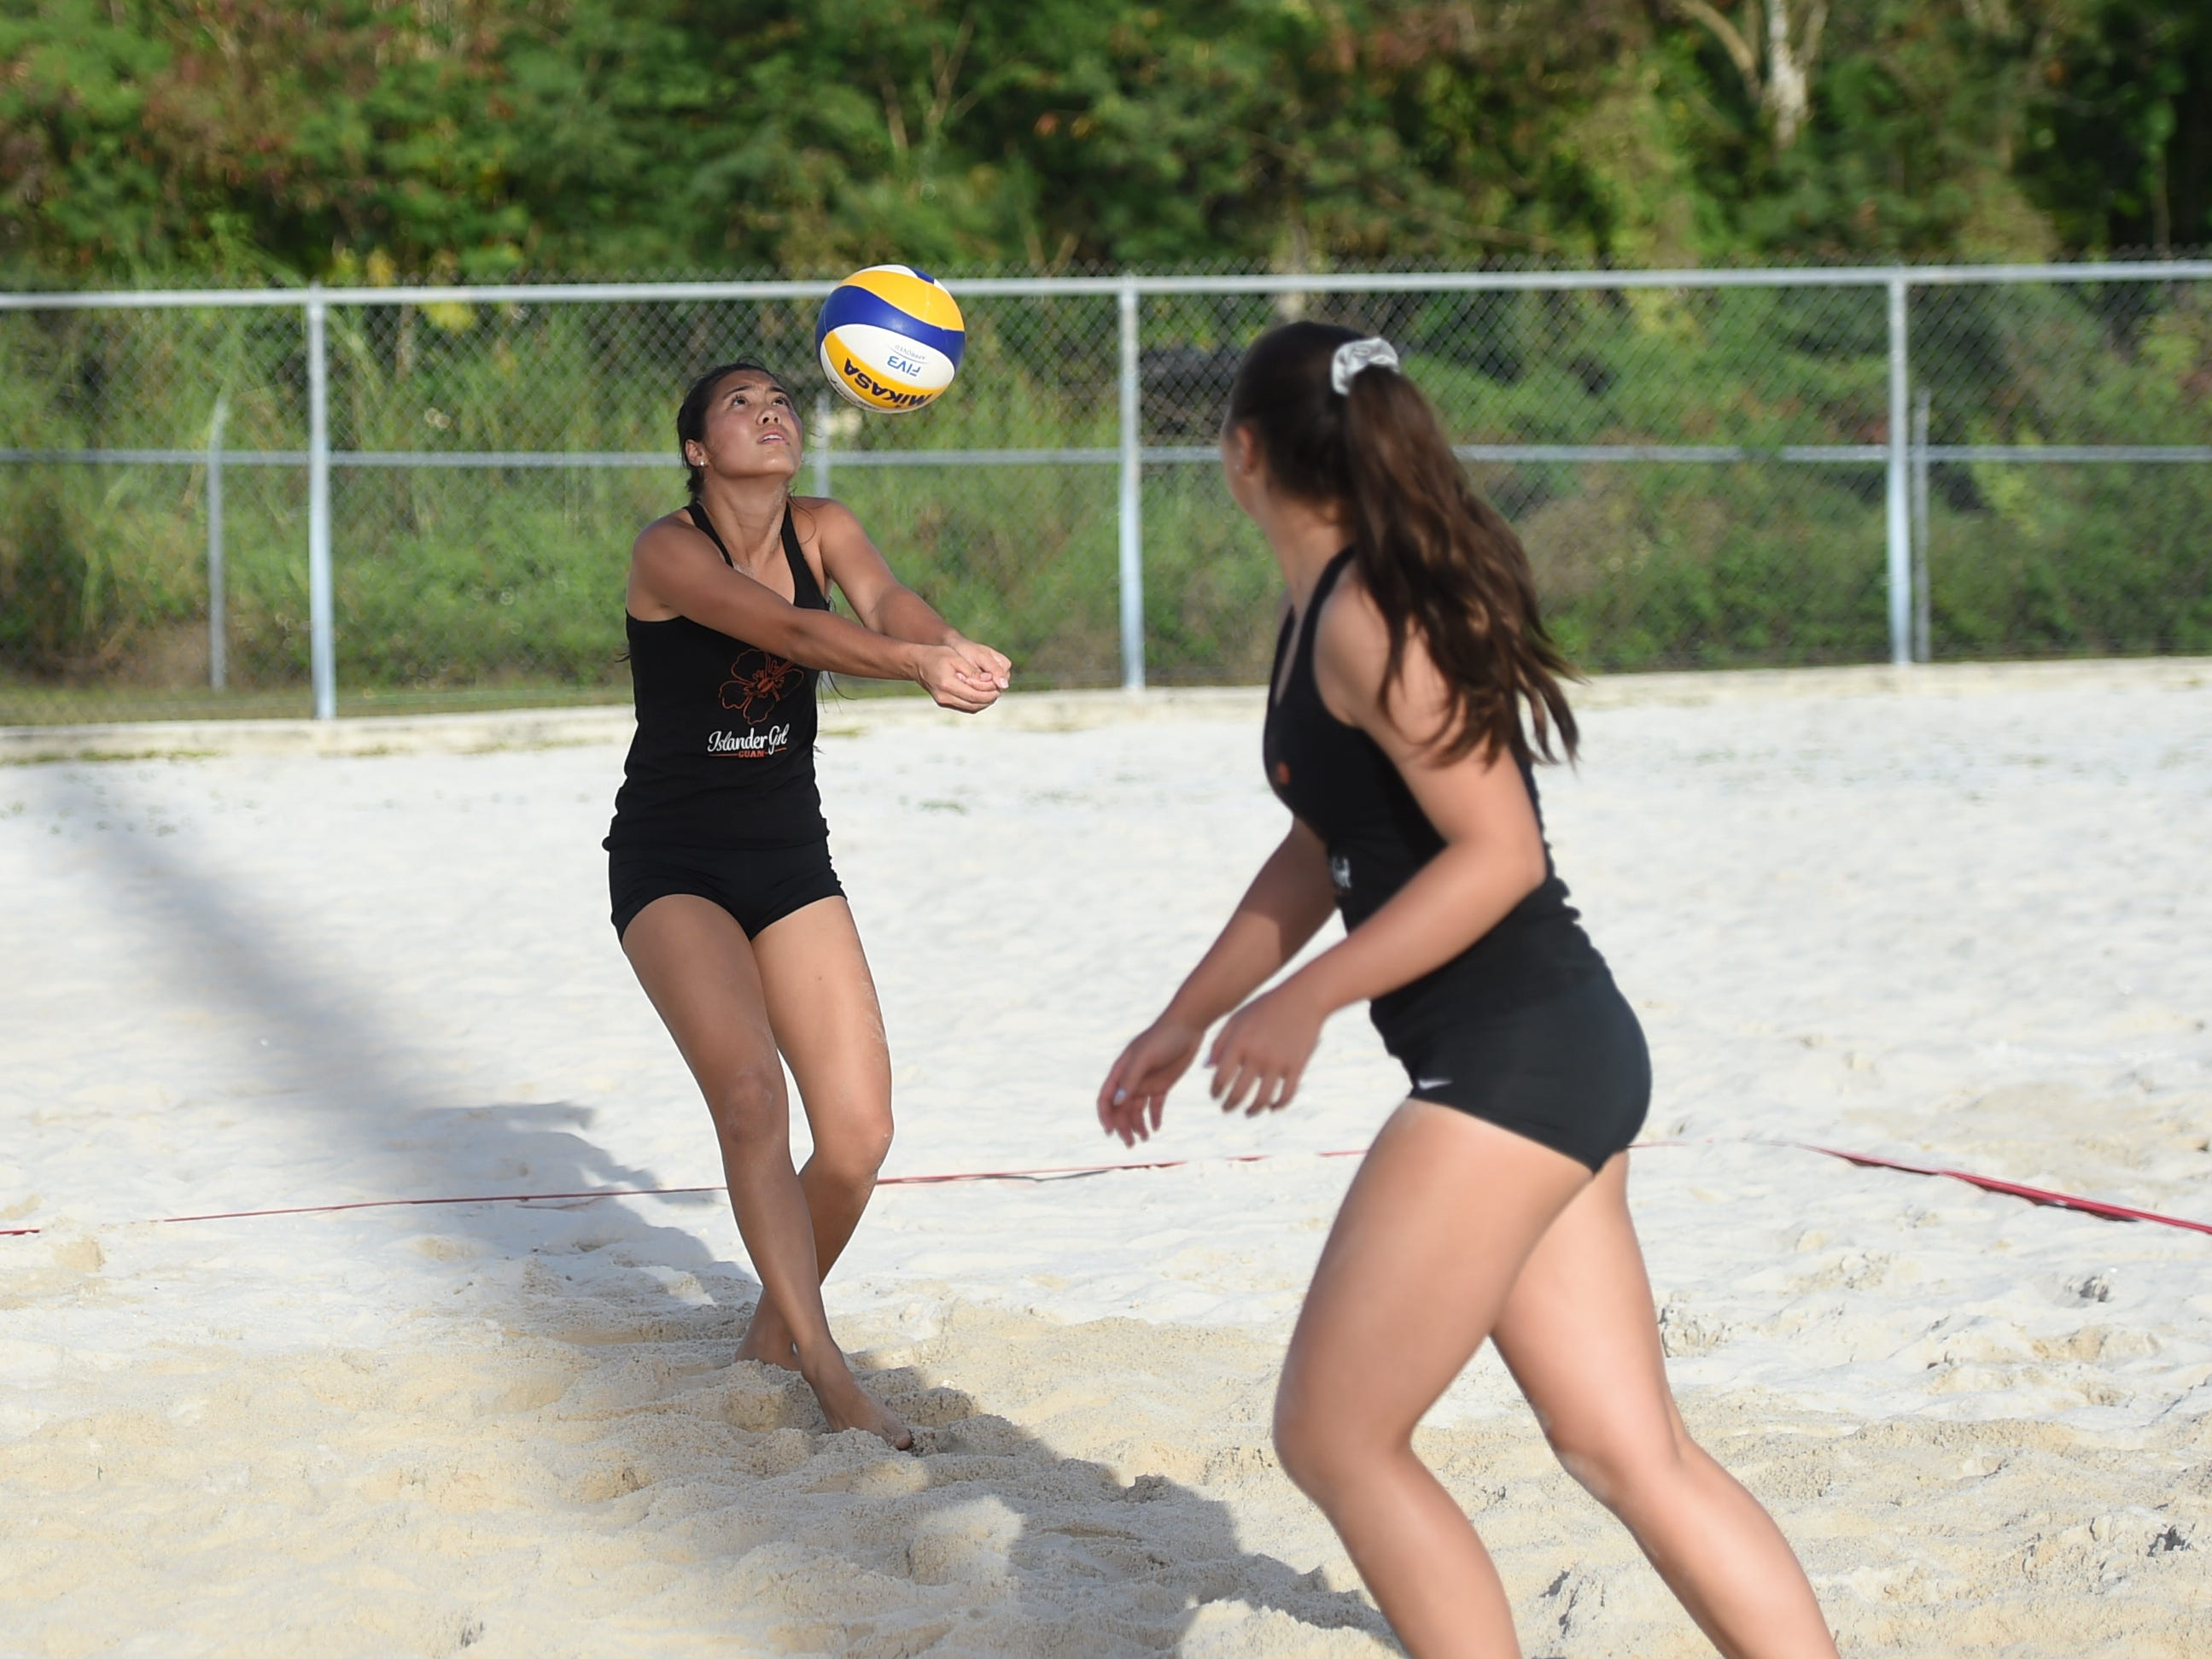 St. John's White's Hallie Wigsten bumps the ball during the IIAAG Beach Volleyball championship game at the Guam Football Association National Training Center in Dededo